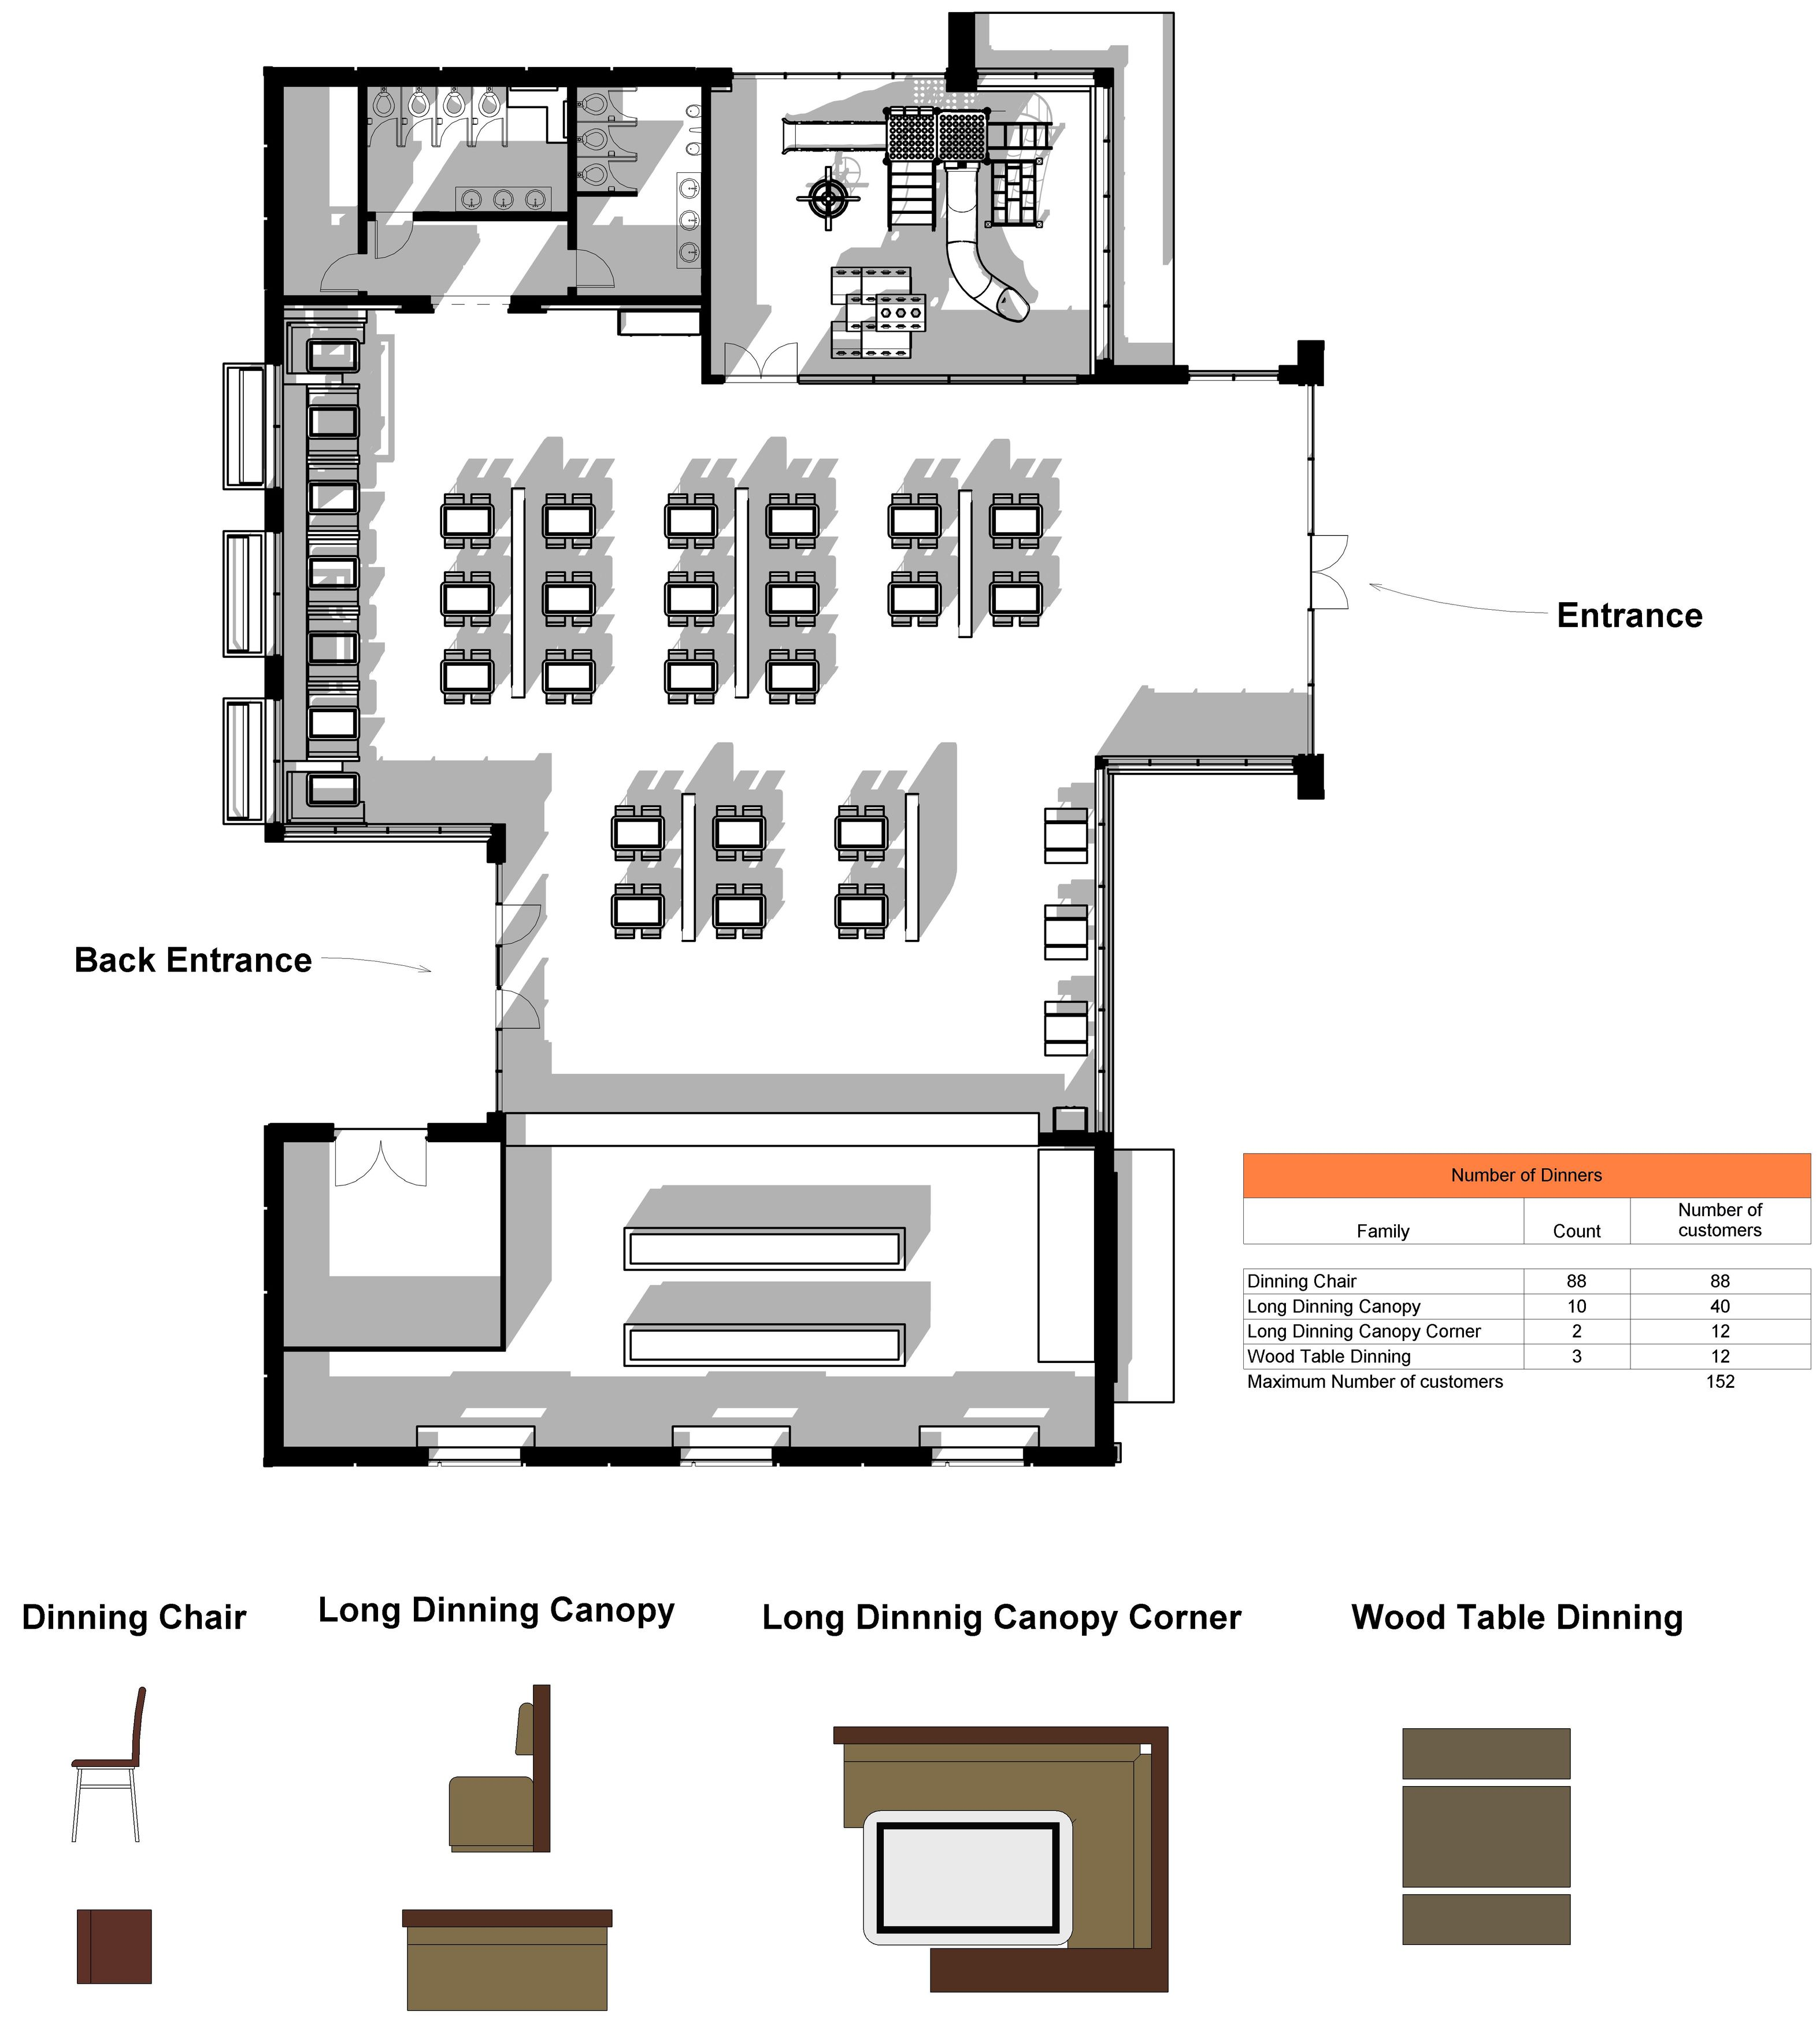 fast food restaurant floor plan design